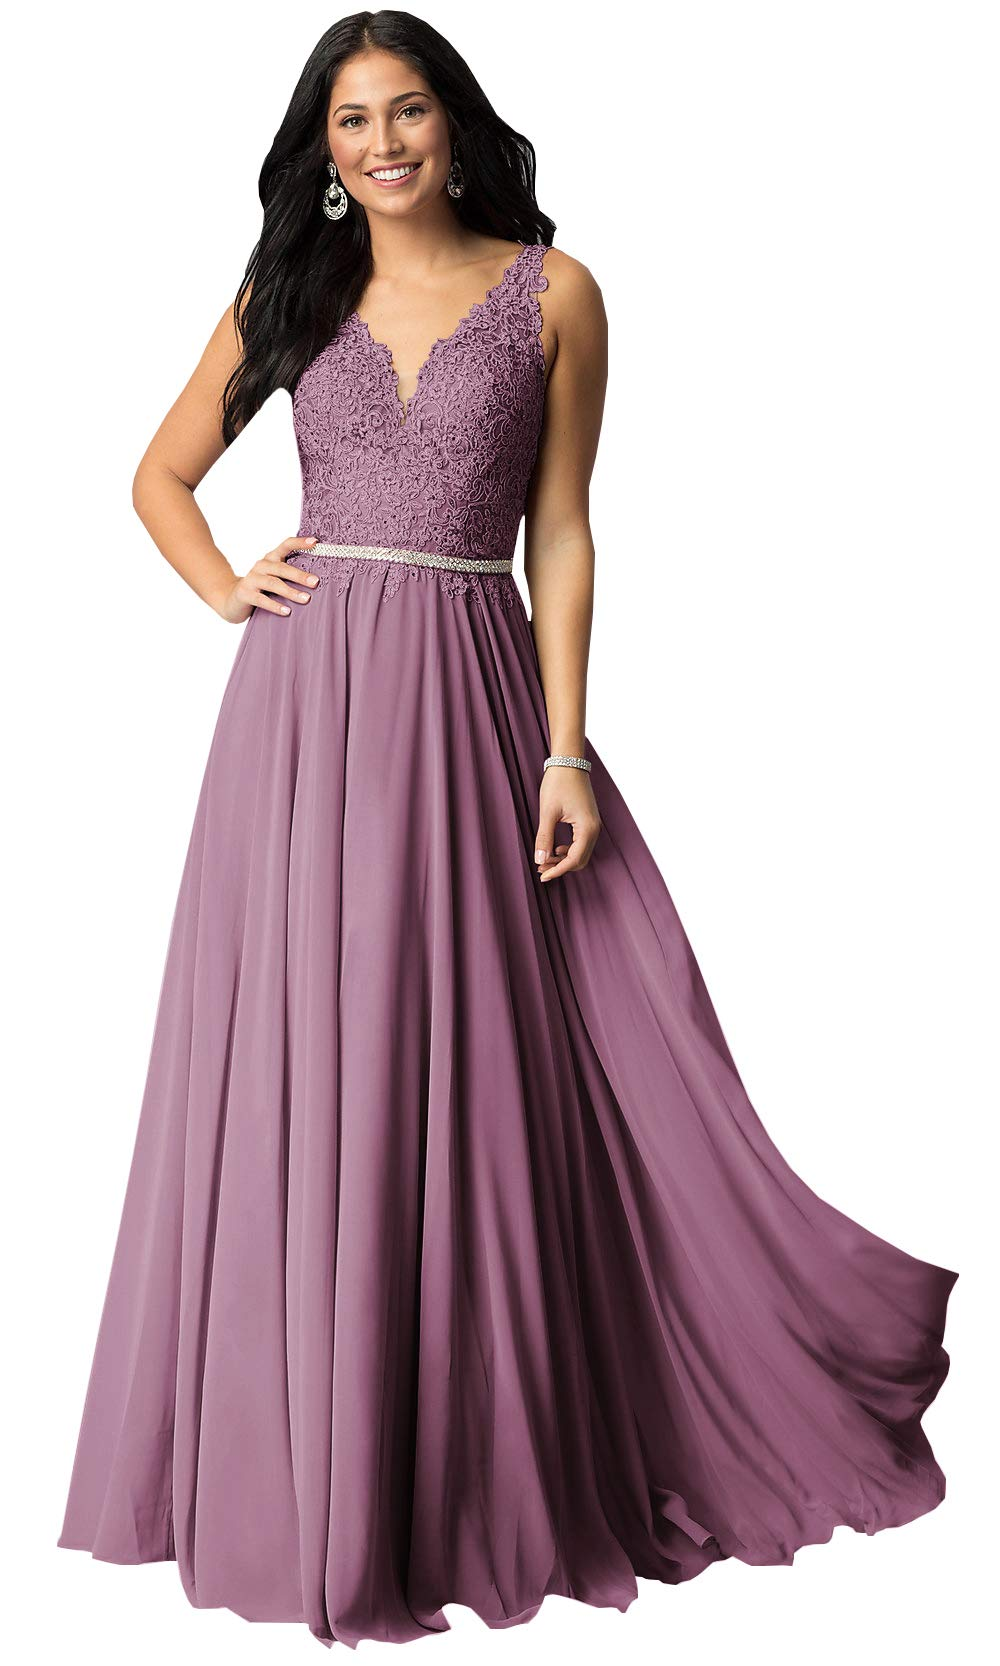 Now and Forever Plus Size A-Line Beaded Belt Bridesmaid Dresses Long for Women Formal Prom Gown (Lilac Purple,18W)